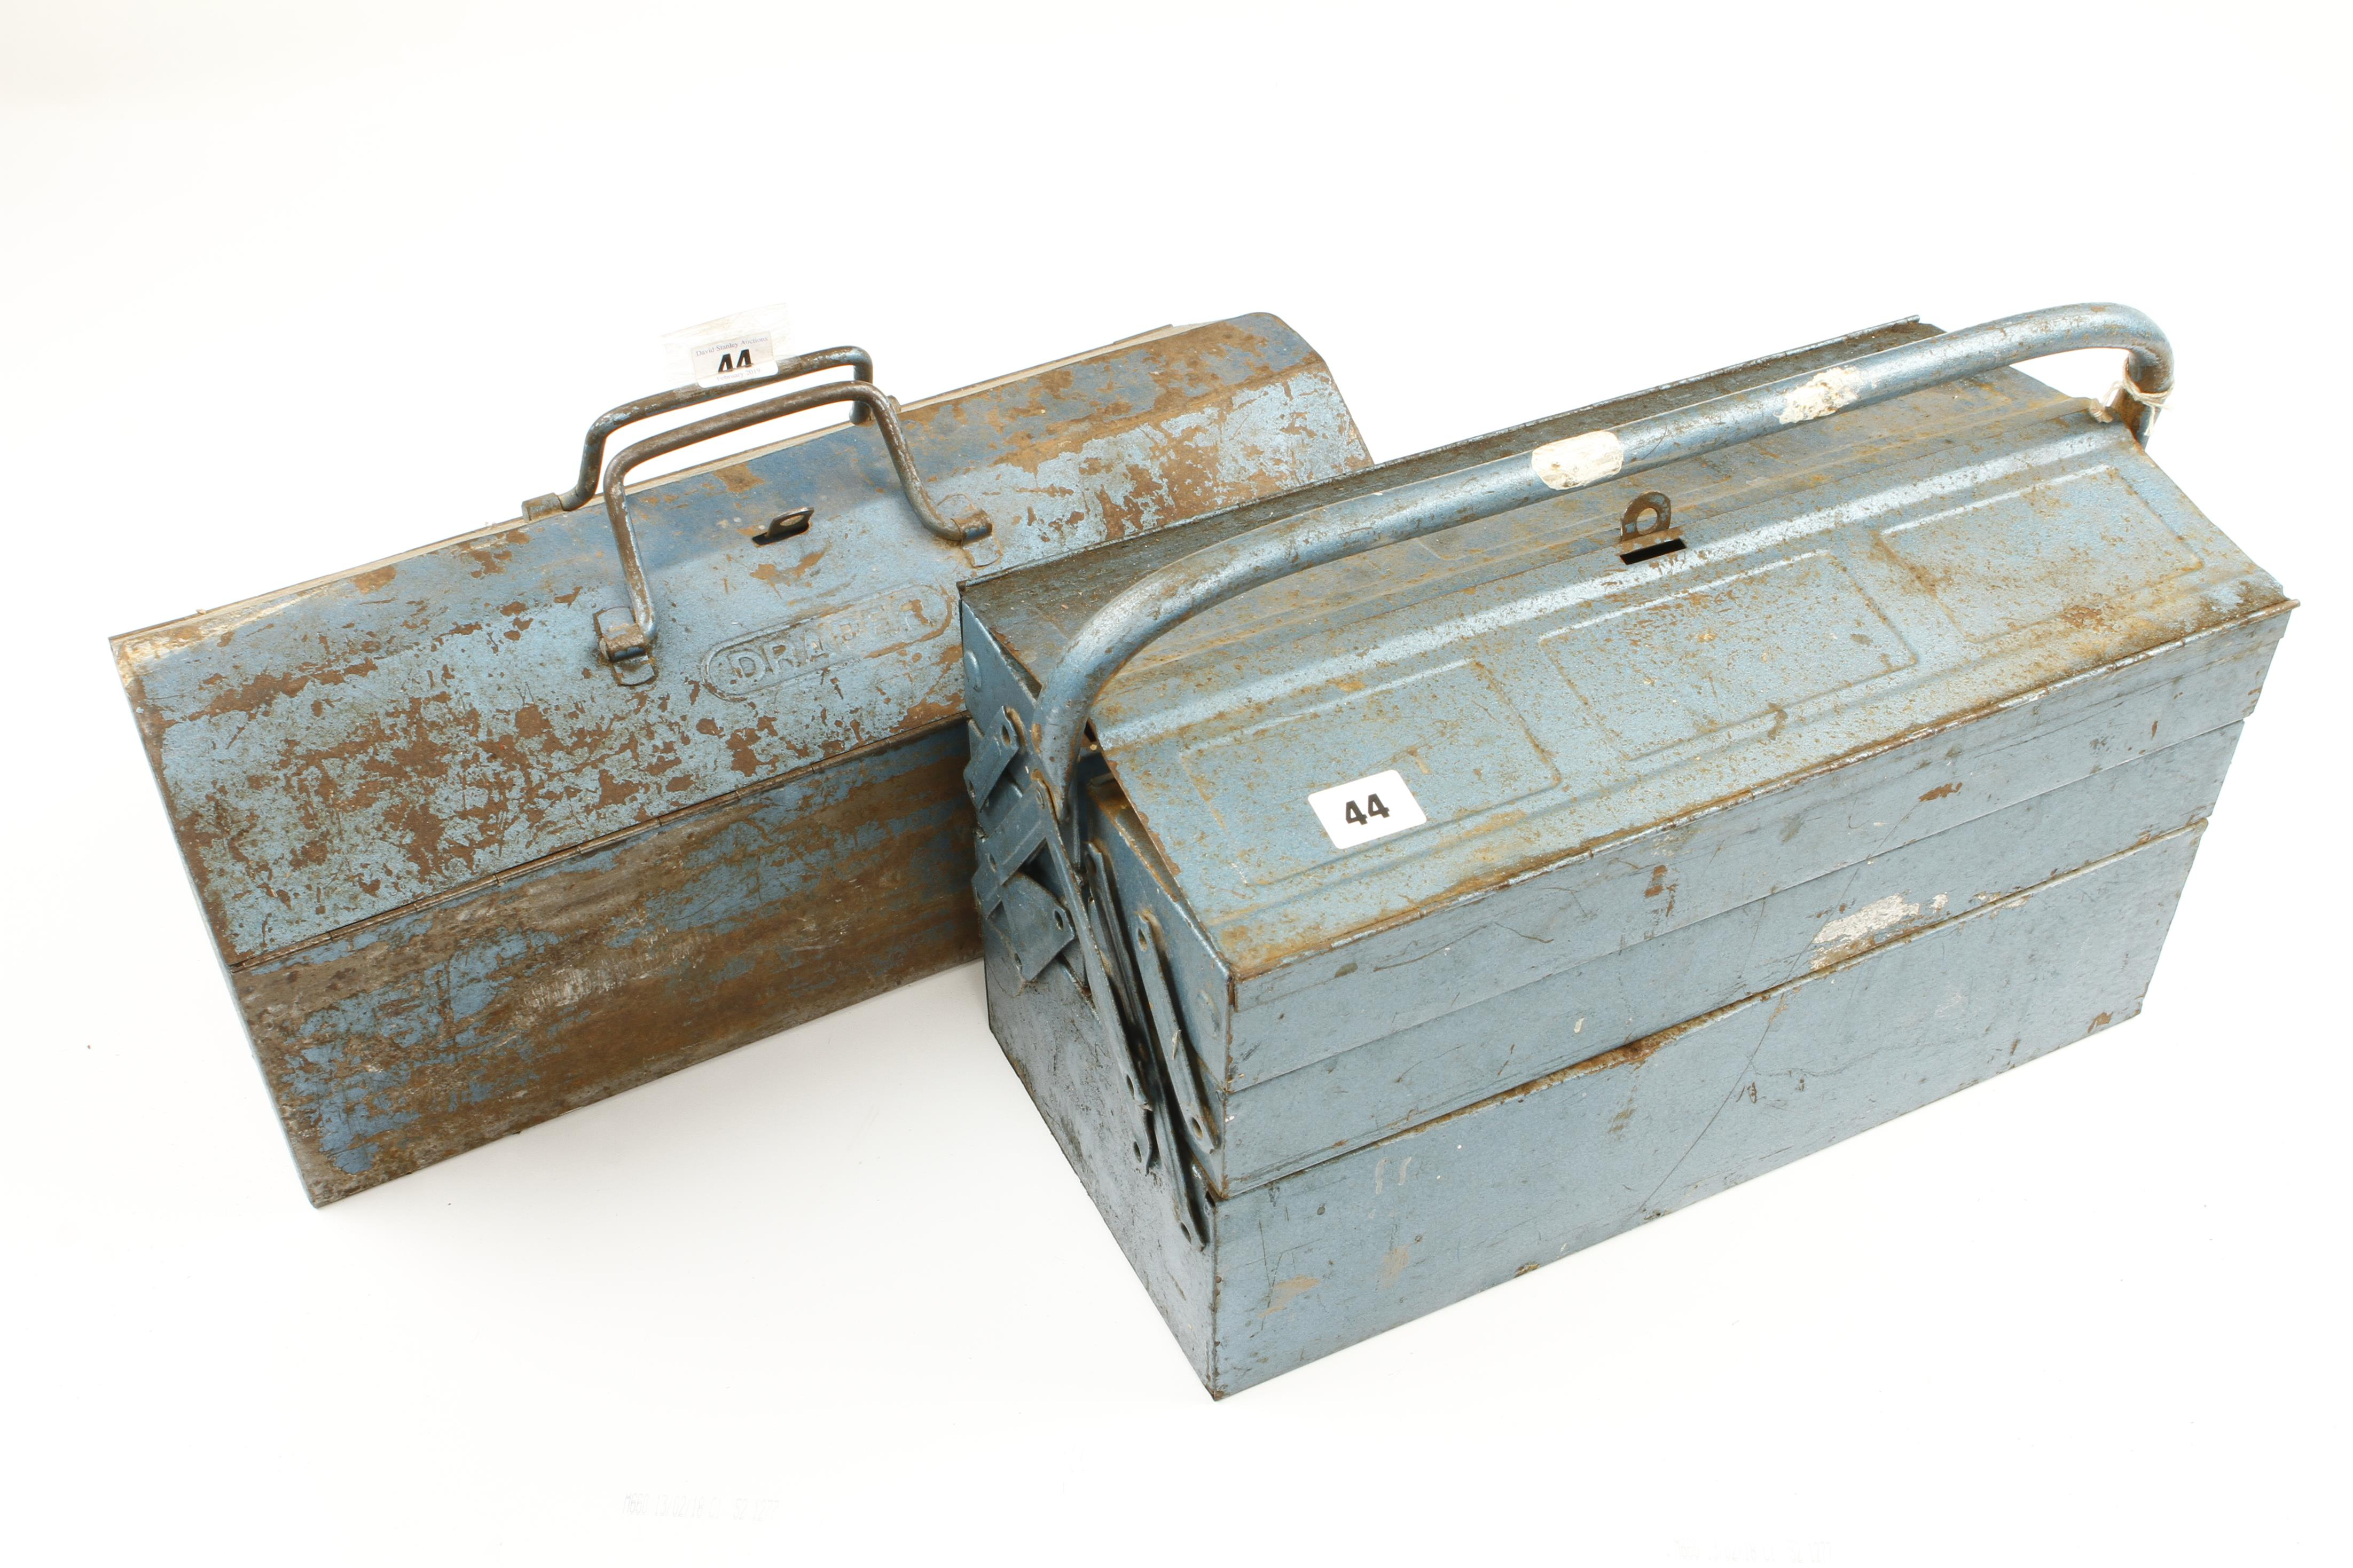 Lot 44 - A cantilever tool box and another with some tools G